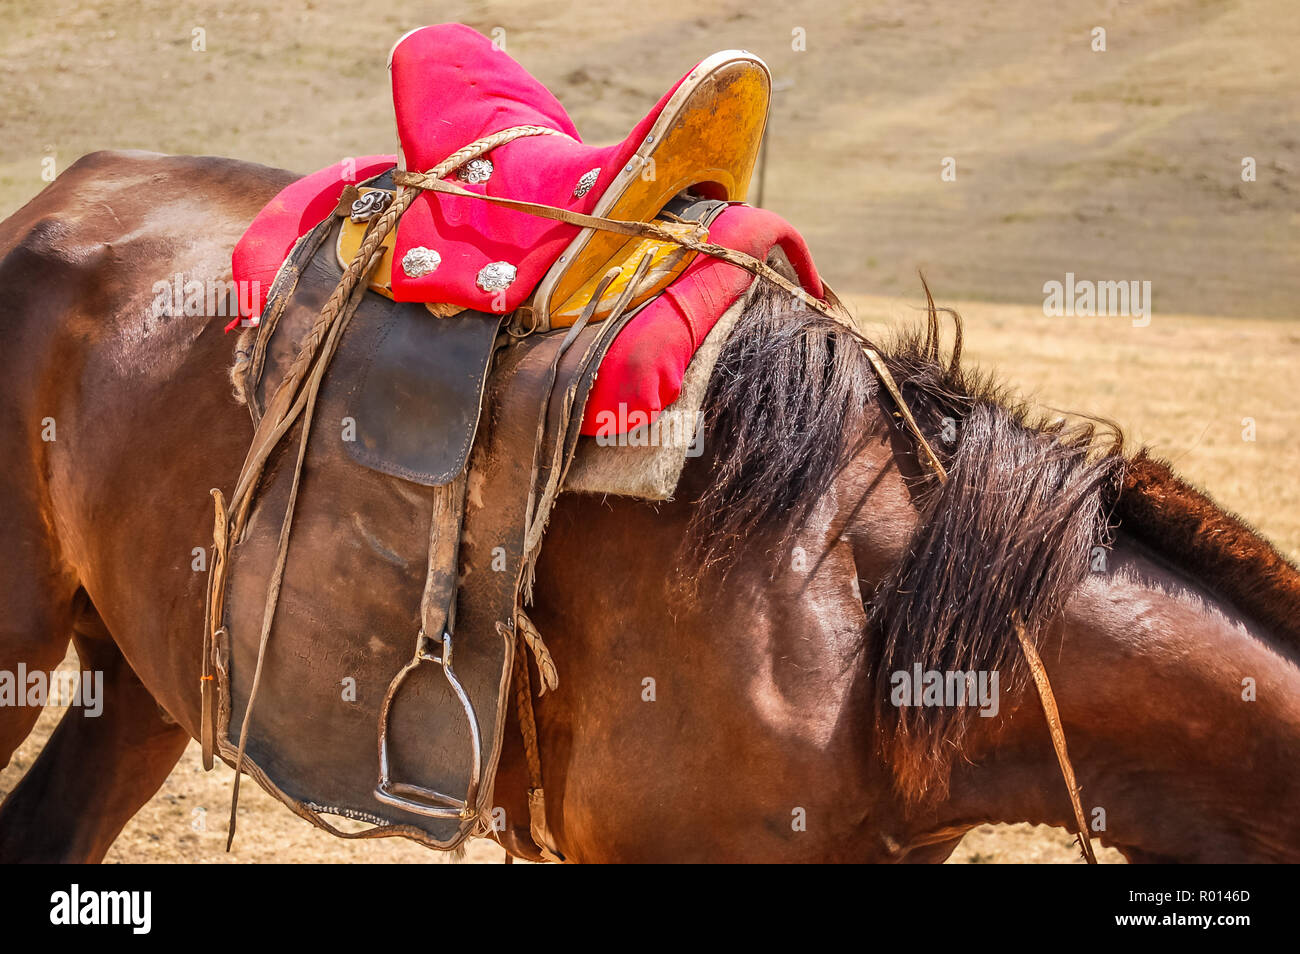 Closeup of saddled horse with traditional saddle in Mongolia on steppe Stock Photo